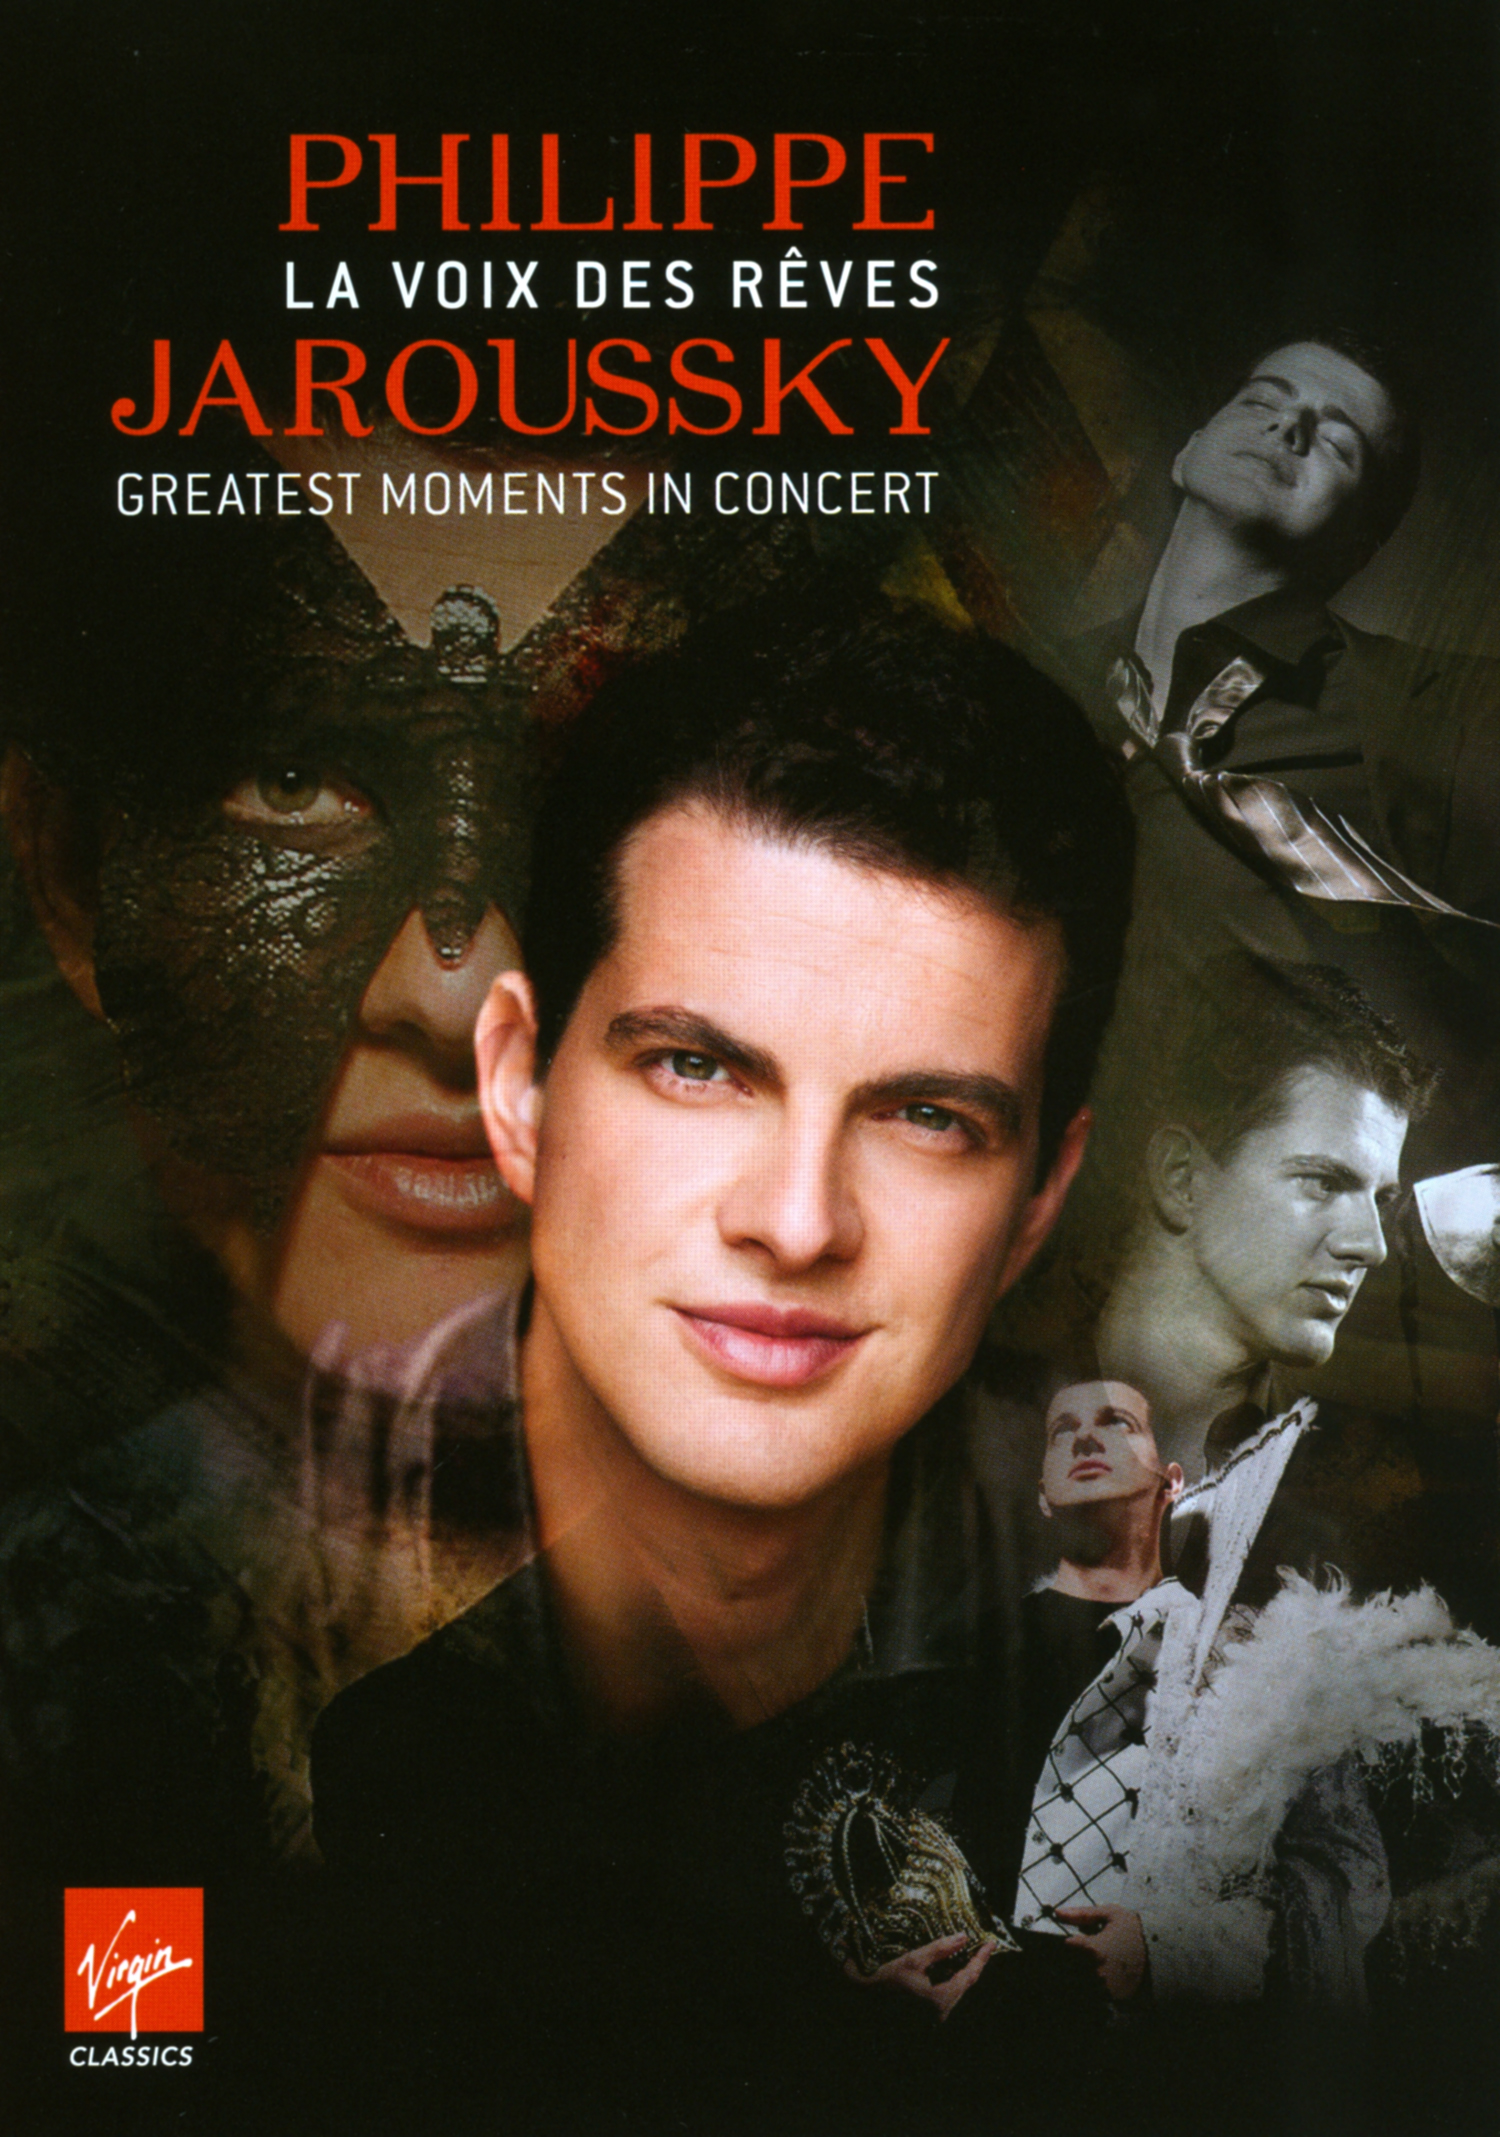 Philippe Jaroussky: La Voix des Rêves - Greatest Moments in Concert